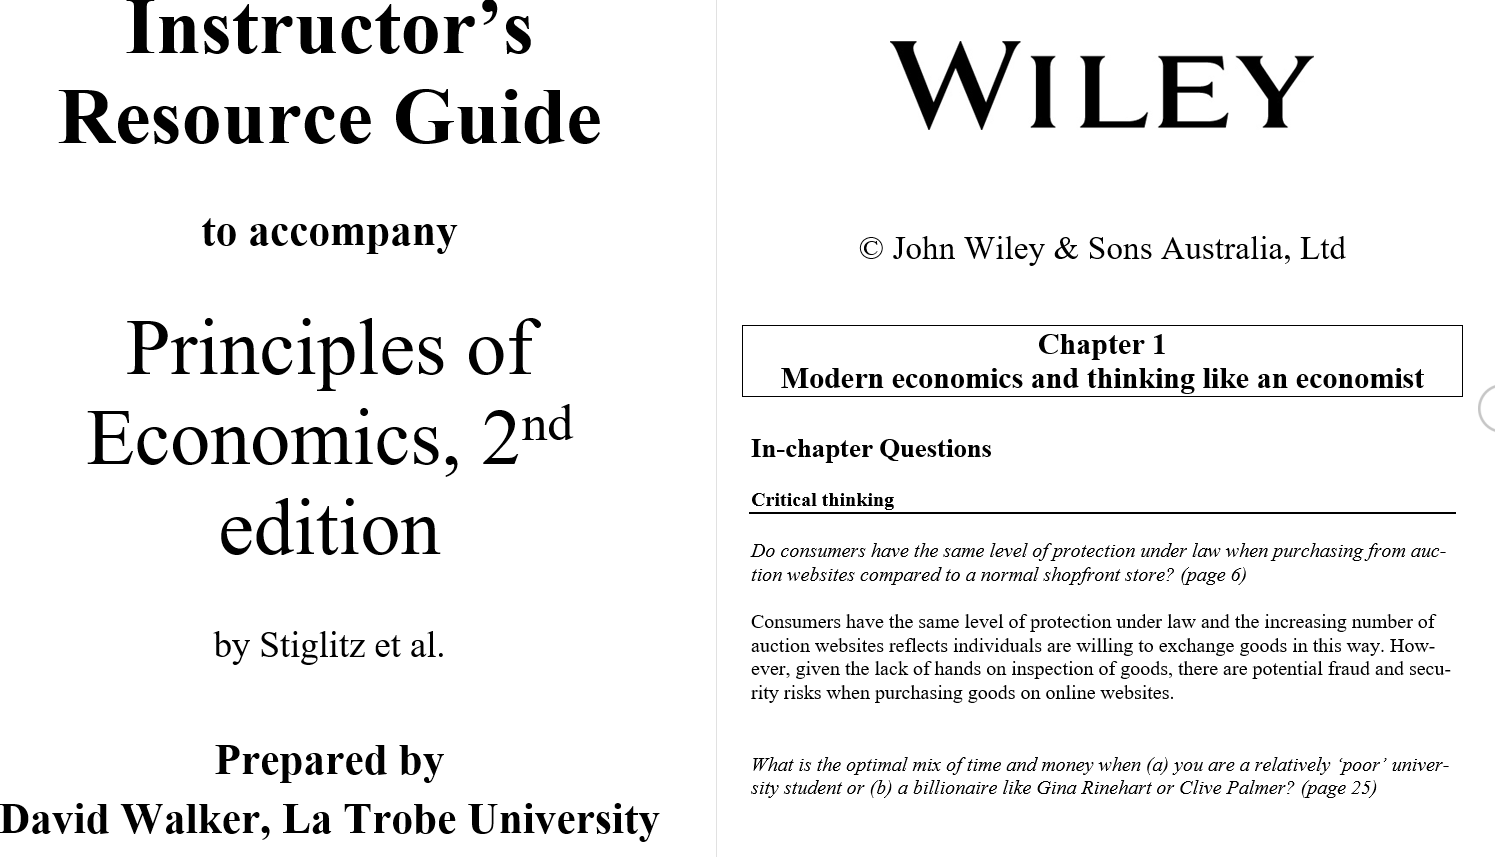 solution manual for Principles of Economics 2nd Australian Edition的图片 3